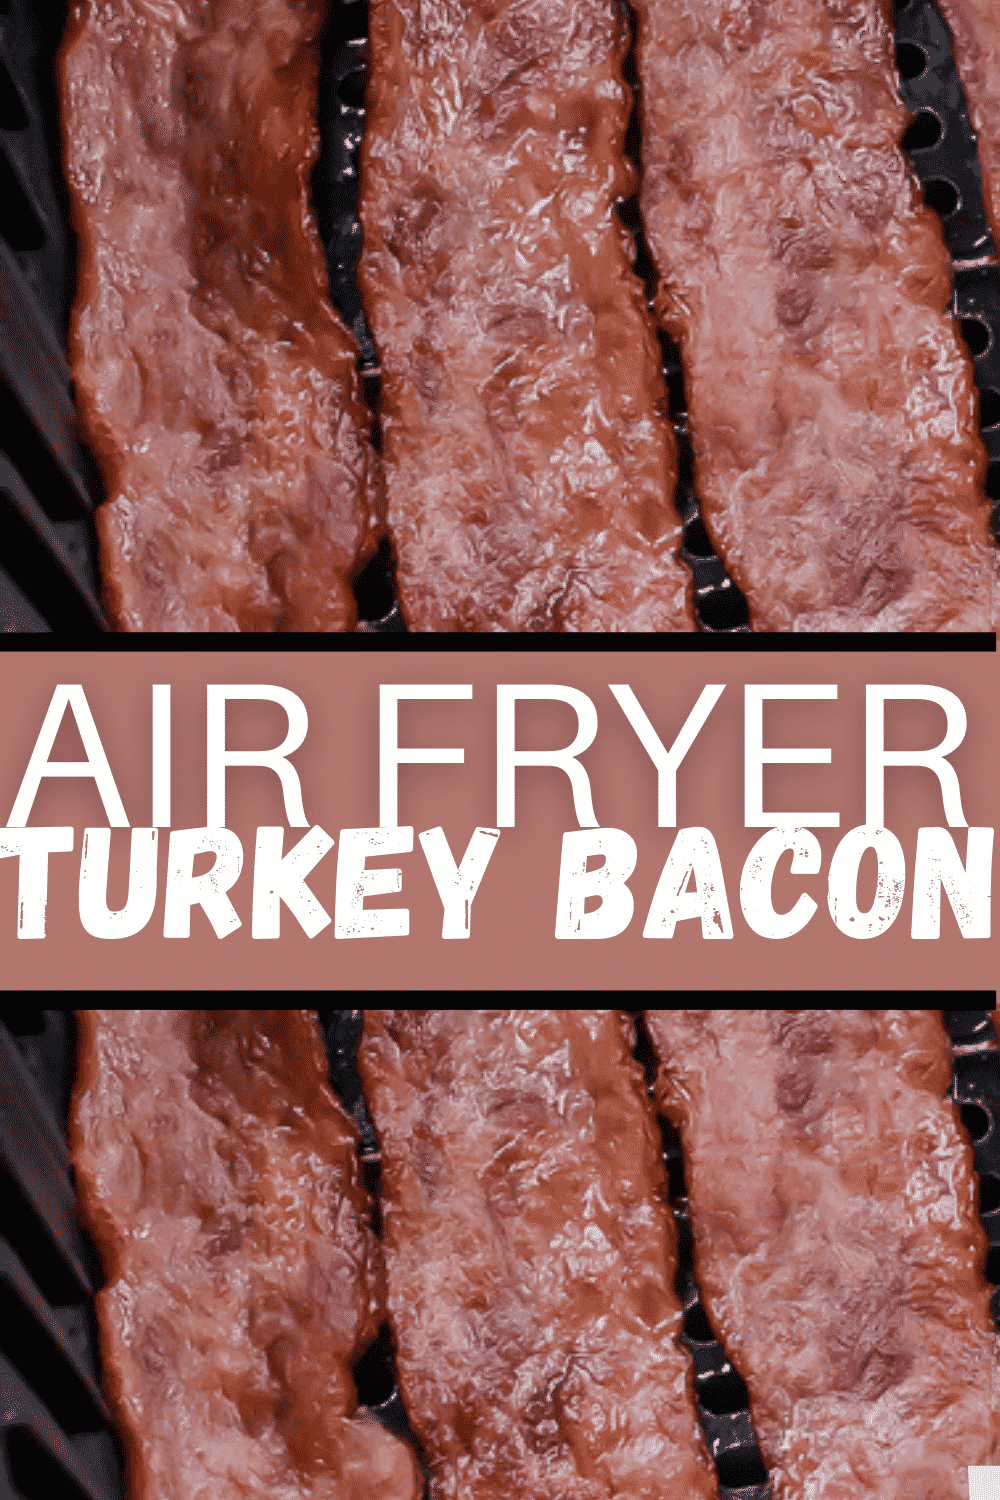 Air fryer turkey bacon is so easy to make, you'll be amazed. Turkey bacon comes out crispy and perfect in your air fryer in less than 10 minutes. #breakfast #airfryerturkeybacon via @vegetarianmamma